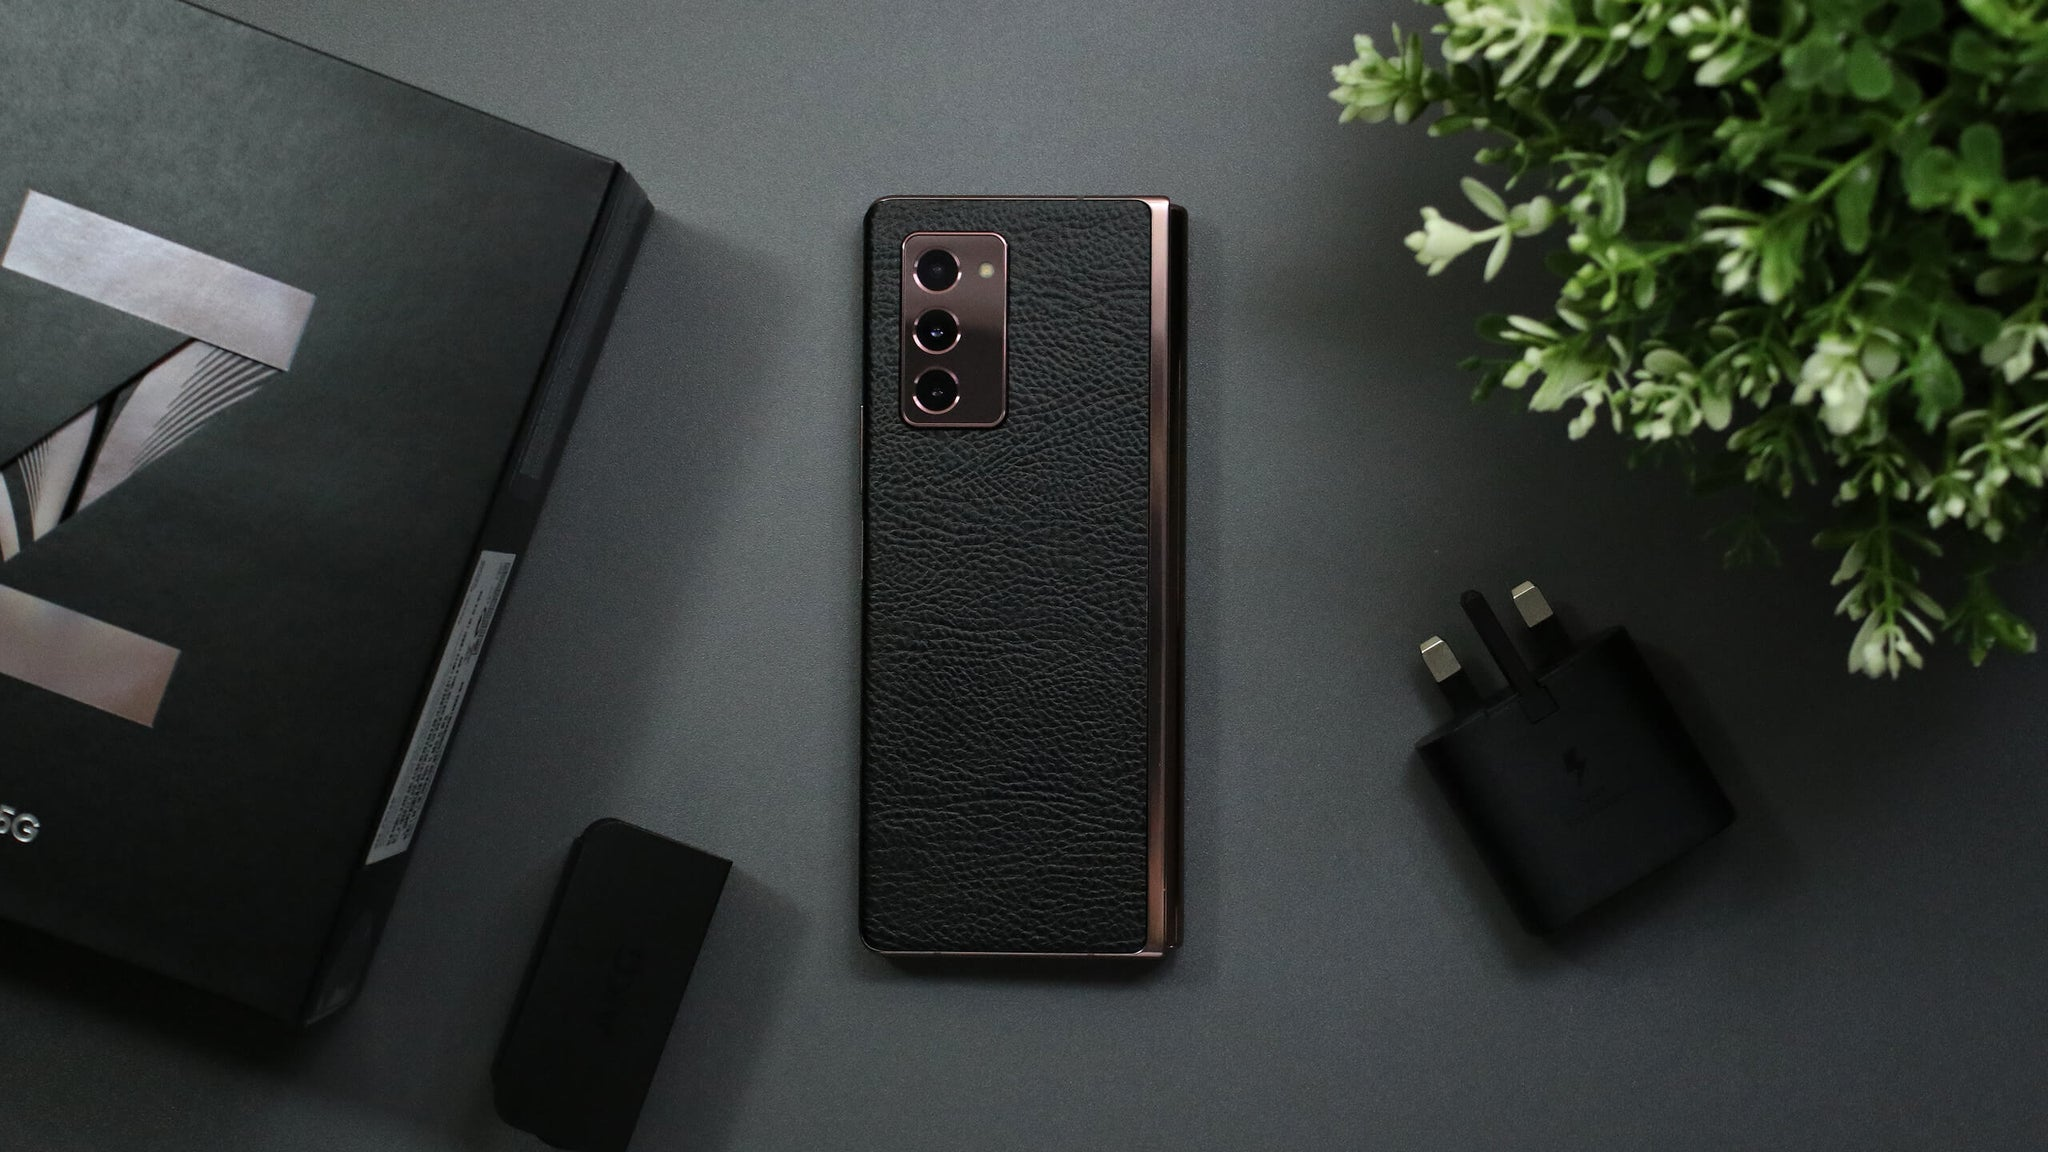 Samsung Galaxy Z Fold 2 Black Leather Skins